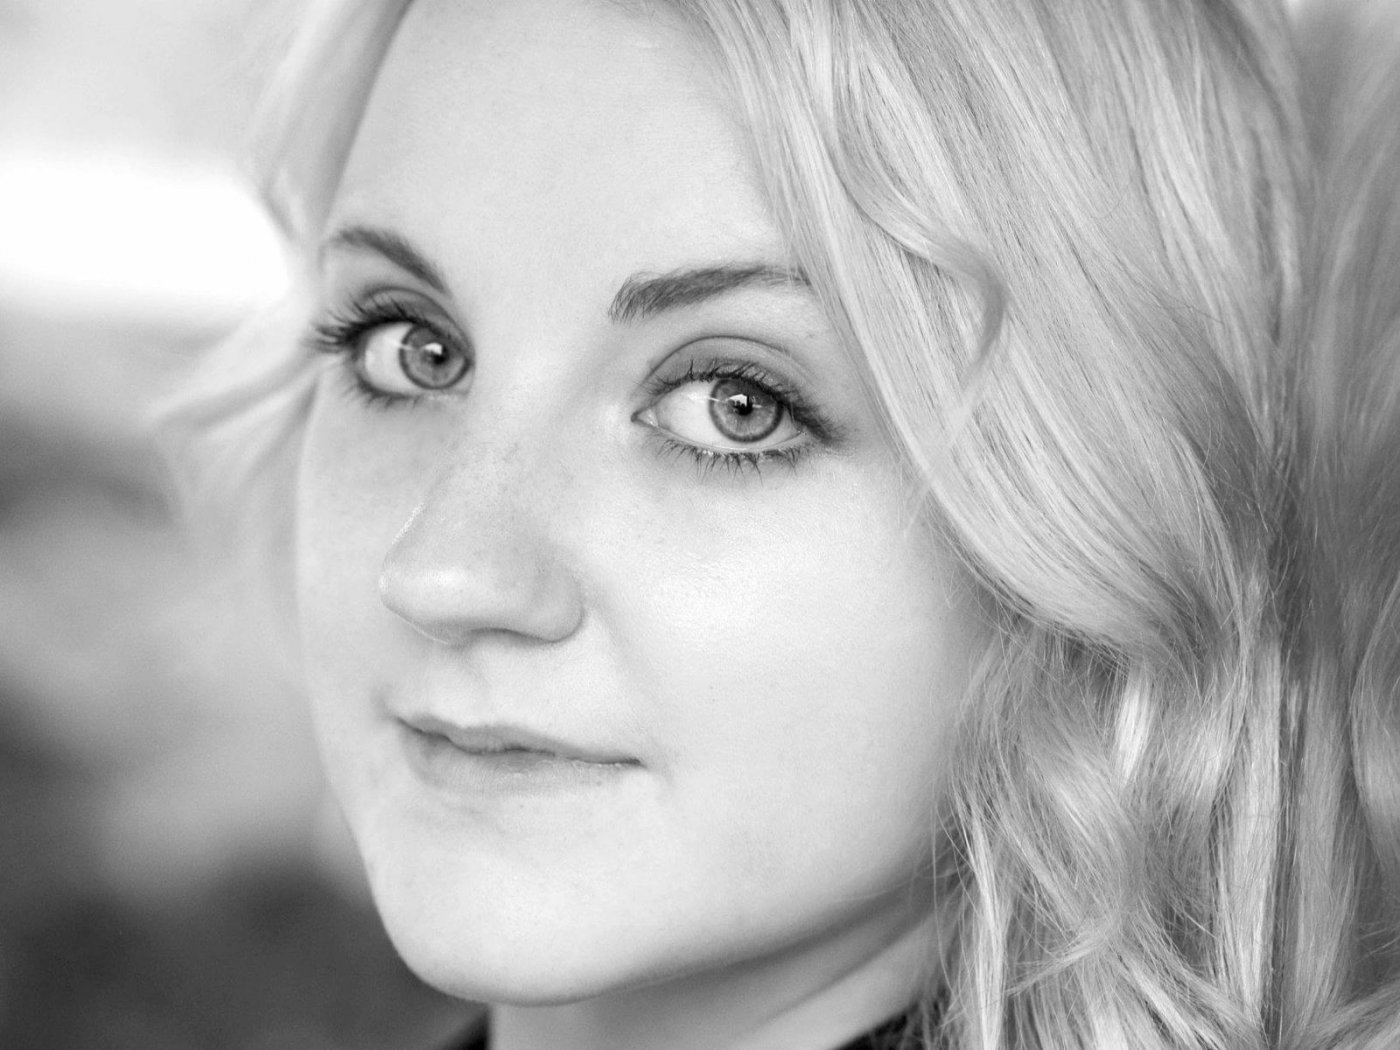 monochrome evanna lynch face wallpaper 58123